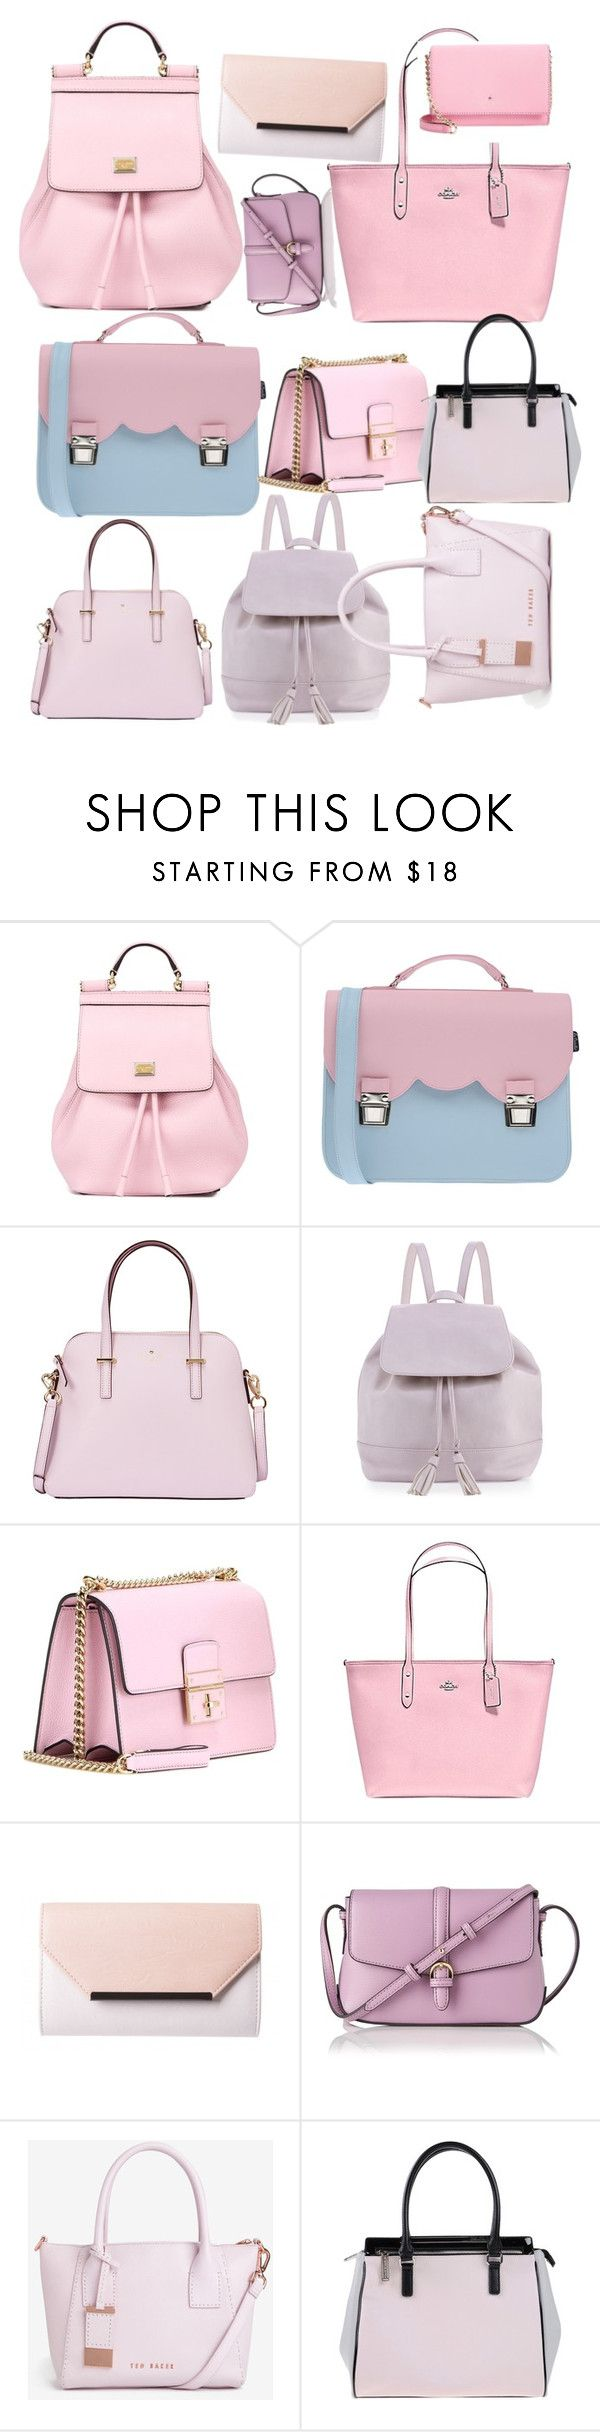 """pink purse collection"" by styyledbykristin ❤ liked on Polyvore featuring Dolce&Gabbana, La Cartella, Kate Spade, Neiman Marcus, Coach, L.K.Bennett, Ted Baker and Versace"